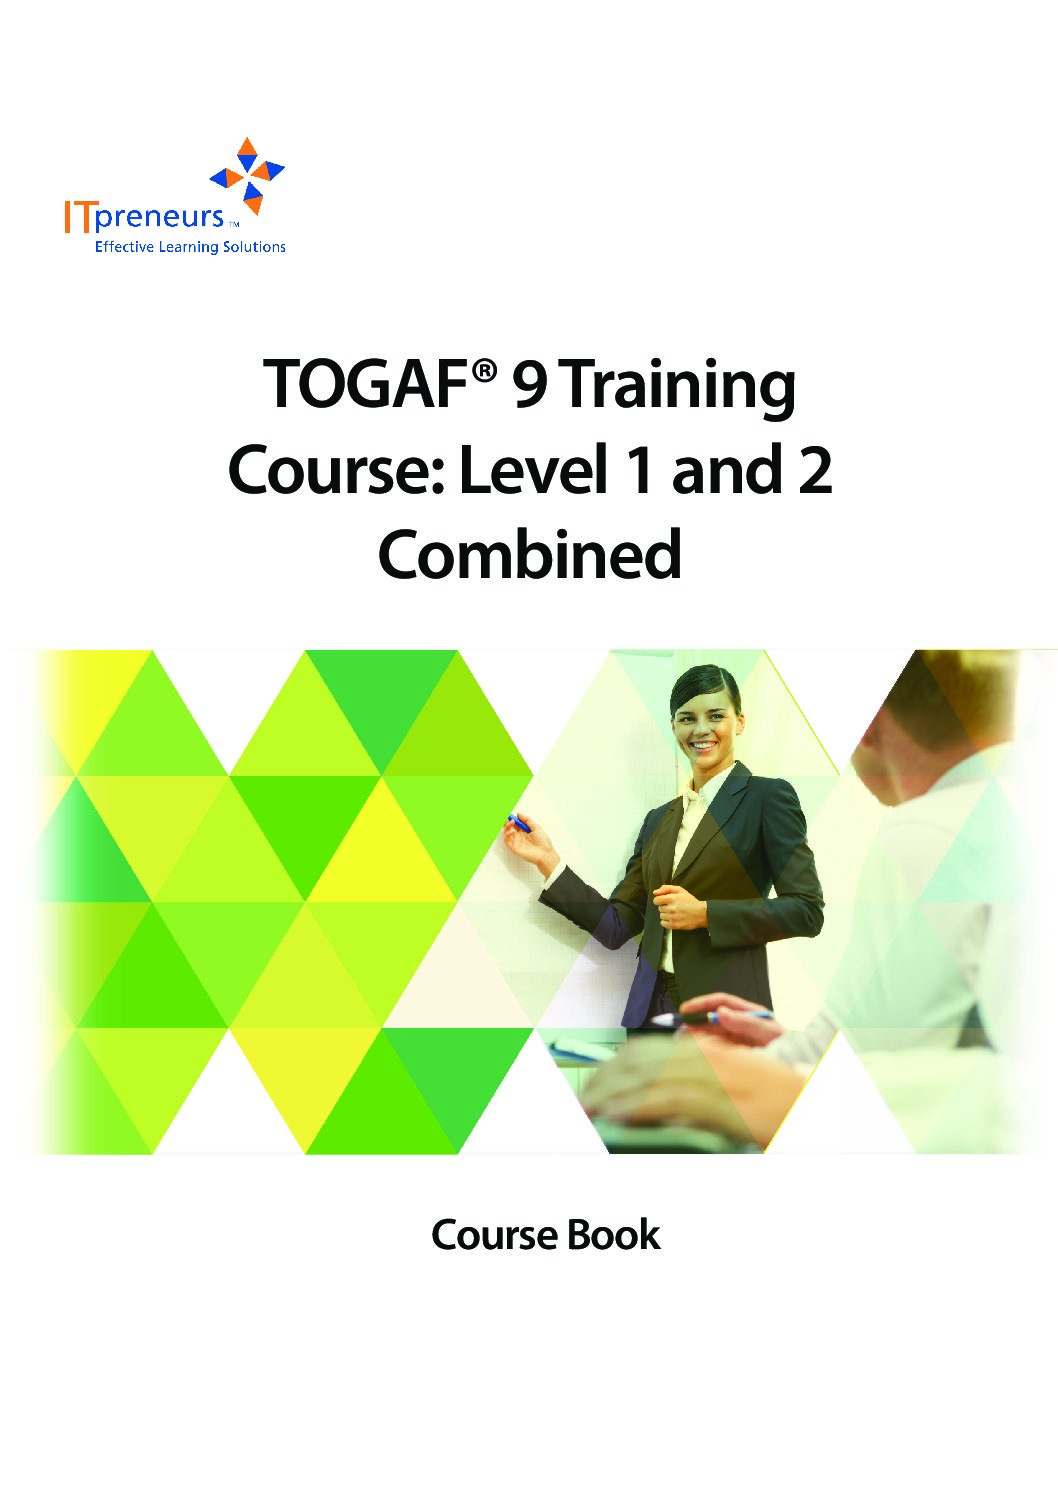 TOGAF® 9 Training Course - Level 1 and 2 Combined_Select_r3.1.0